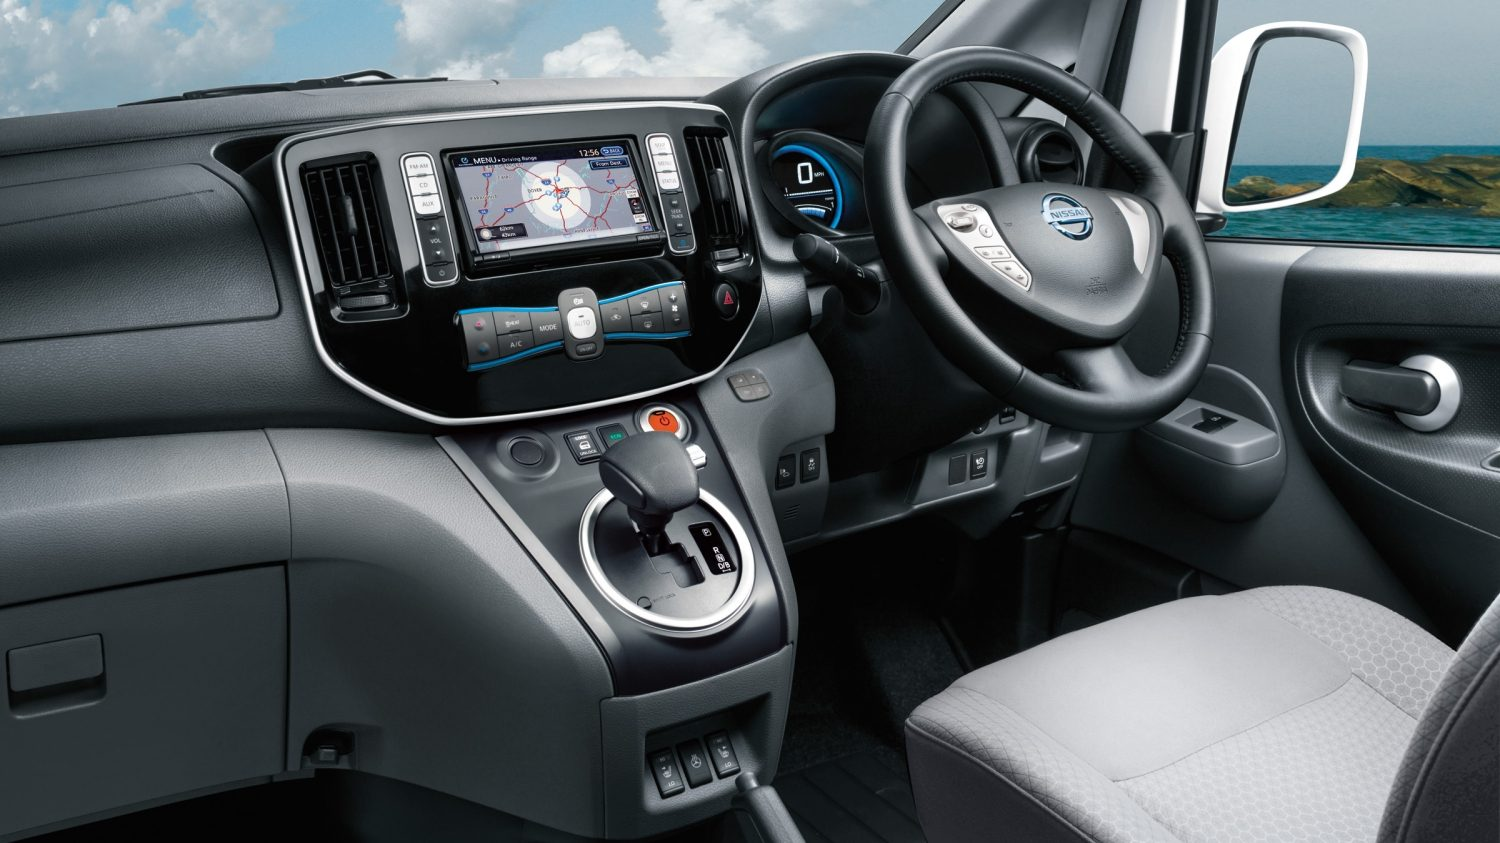 nissan nv200 combi interior images galleries with a bite. Black Bedroom Furniture Sets. Home Design Ideas